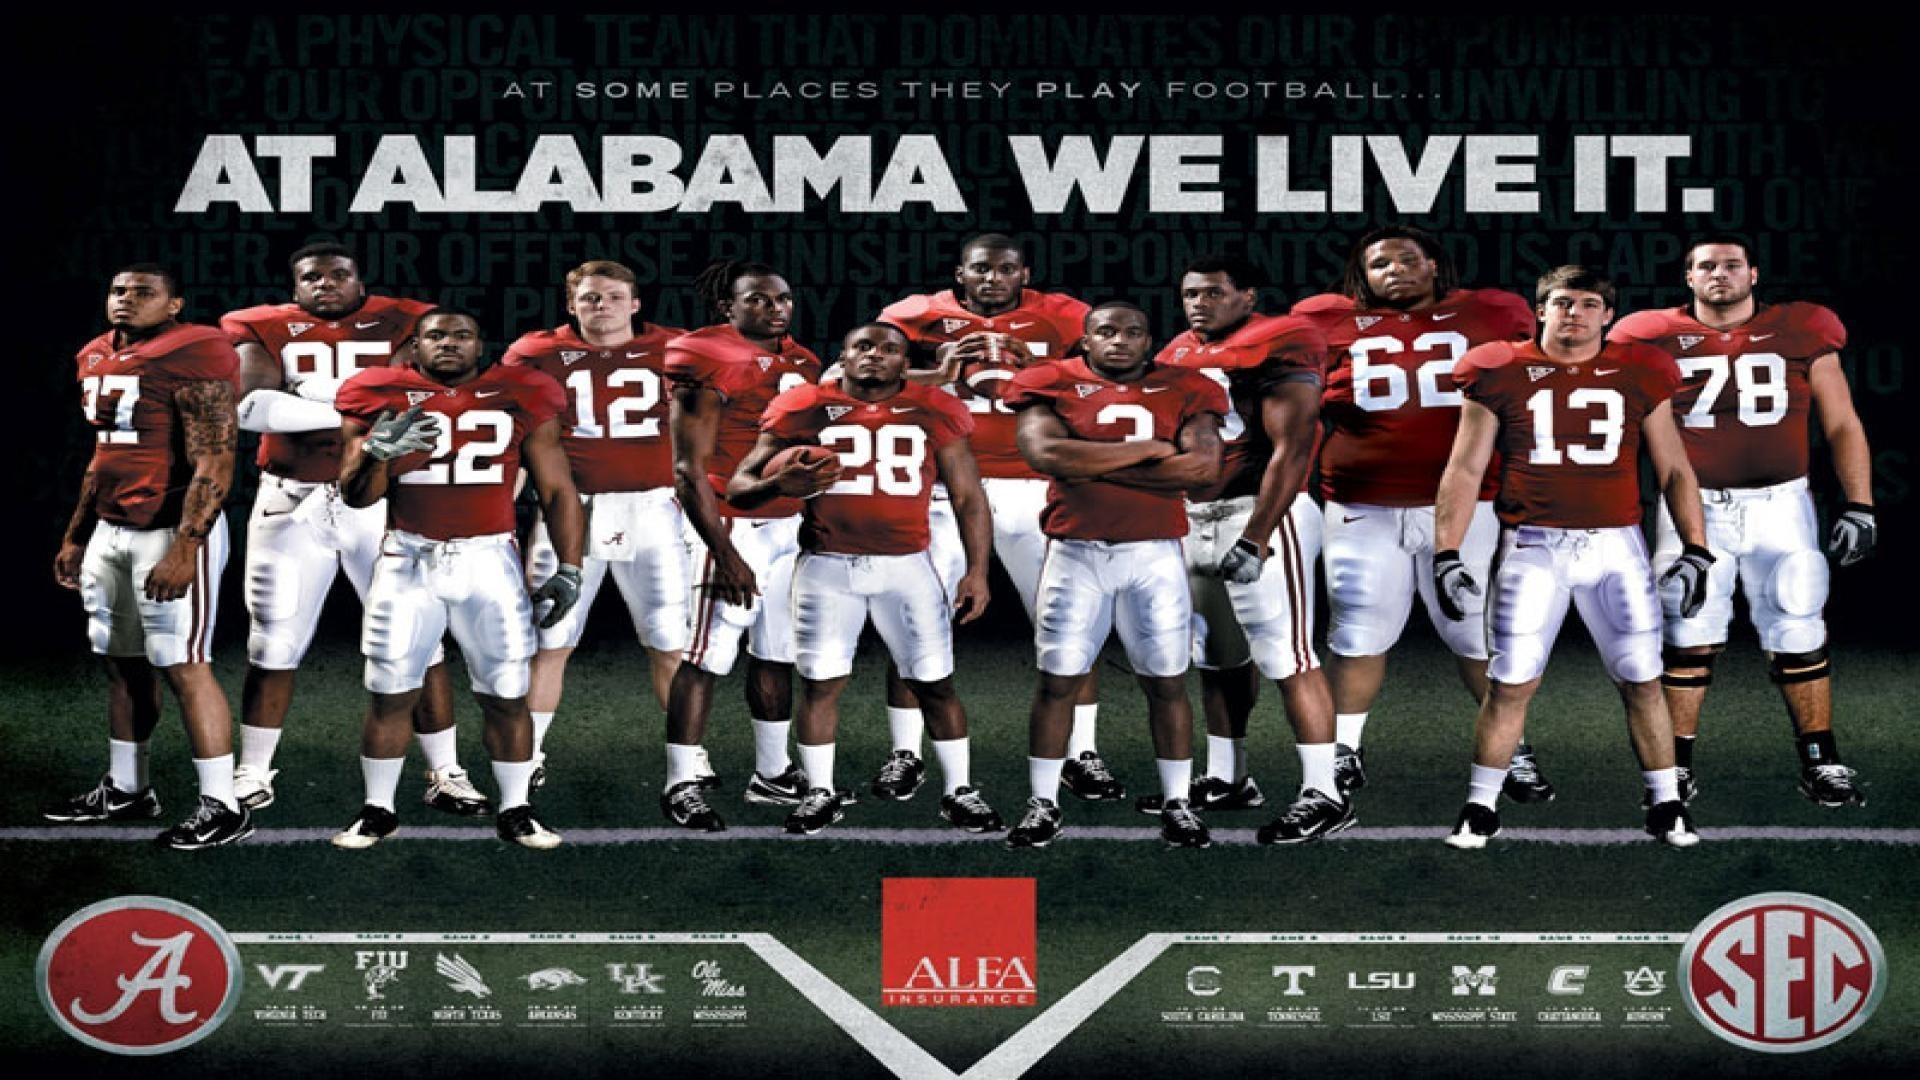 1920x1080  Free Alabama Crimson Tide Wallpapers - Wallpaper Cave